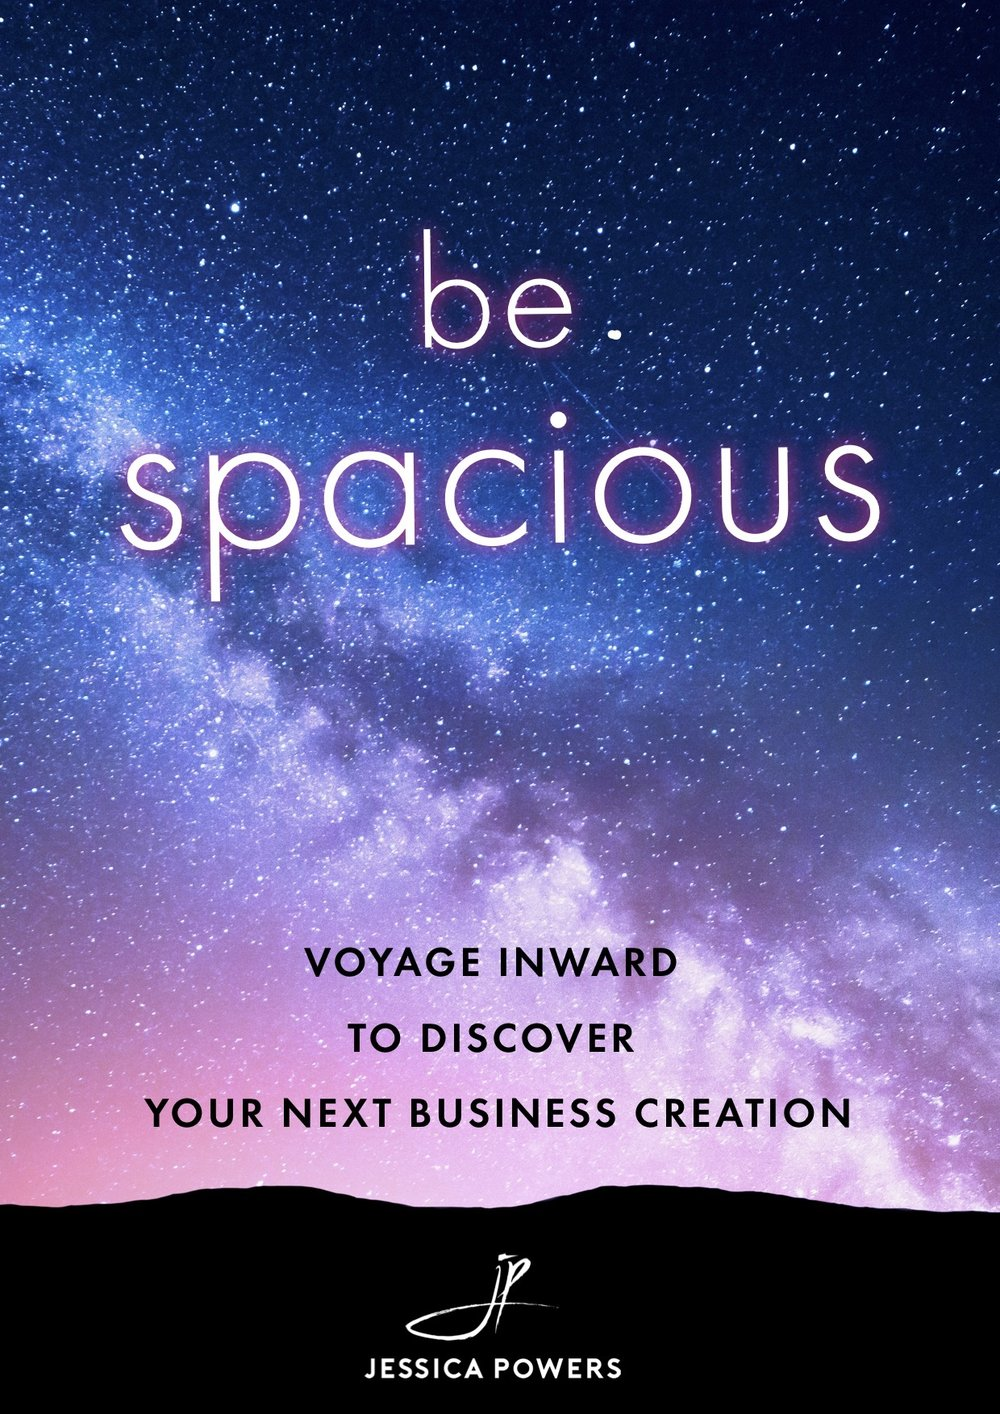 Be Spacious - The VIP DayBe Spacious is my signature workshop. You will voyage inward to discover your next business creation or career path. We will explore and shape your creative ideas, and co-designing a new product, service, career direction, or message that is saturated in you. We discover your creation process that will feel good to your unique needs. Through a process of deep self-awareness, creative thinking, and strategy, you will create a clear and spacious plan to bring your creation into reality.Read More